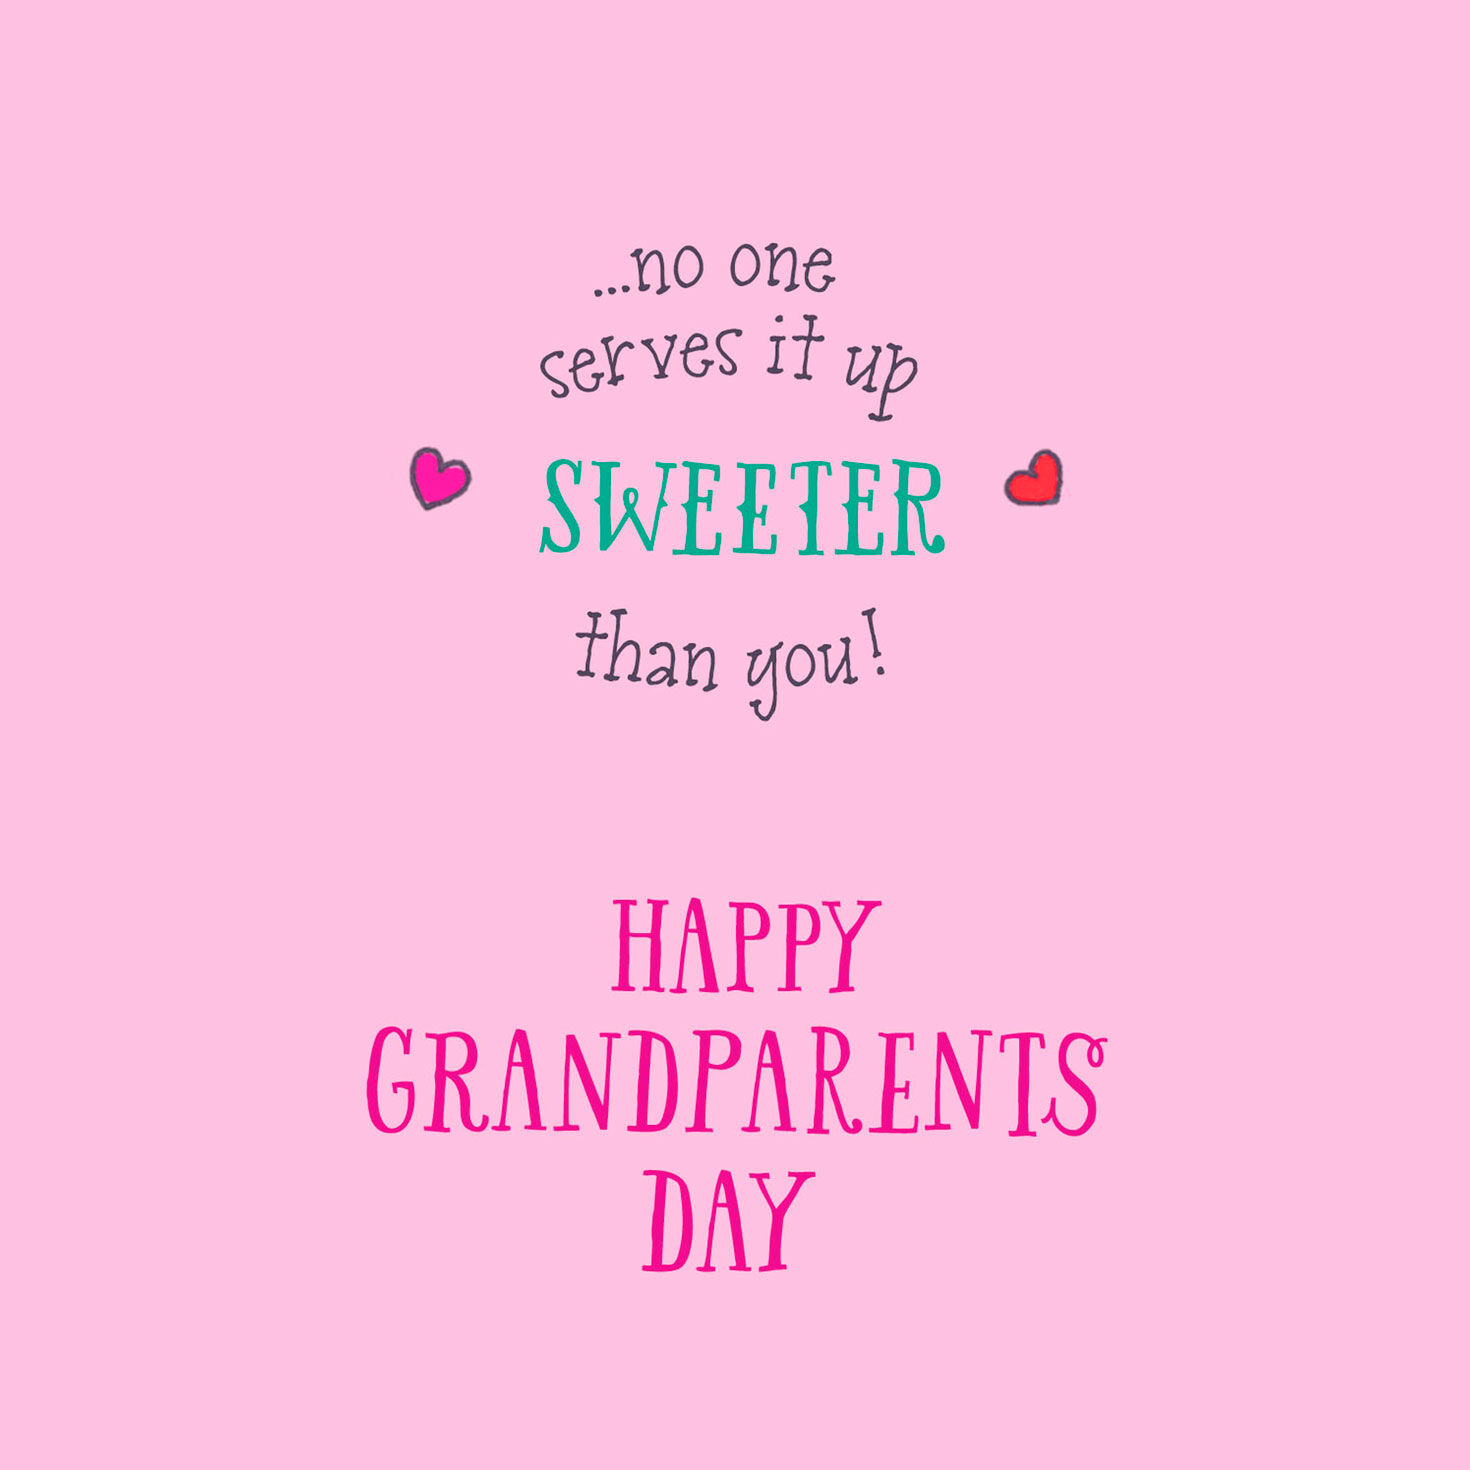 image relating to Grandparents Day Cards Printable identify Grandparents Working day Playing cards Hallmark